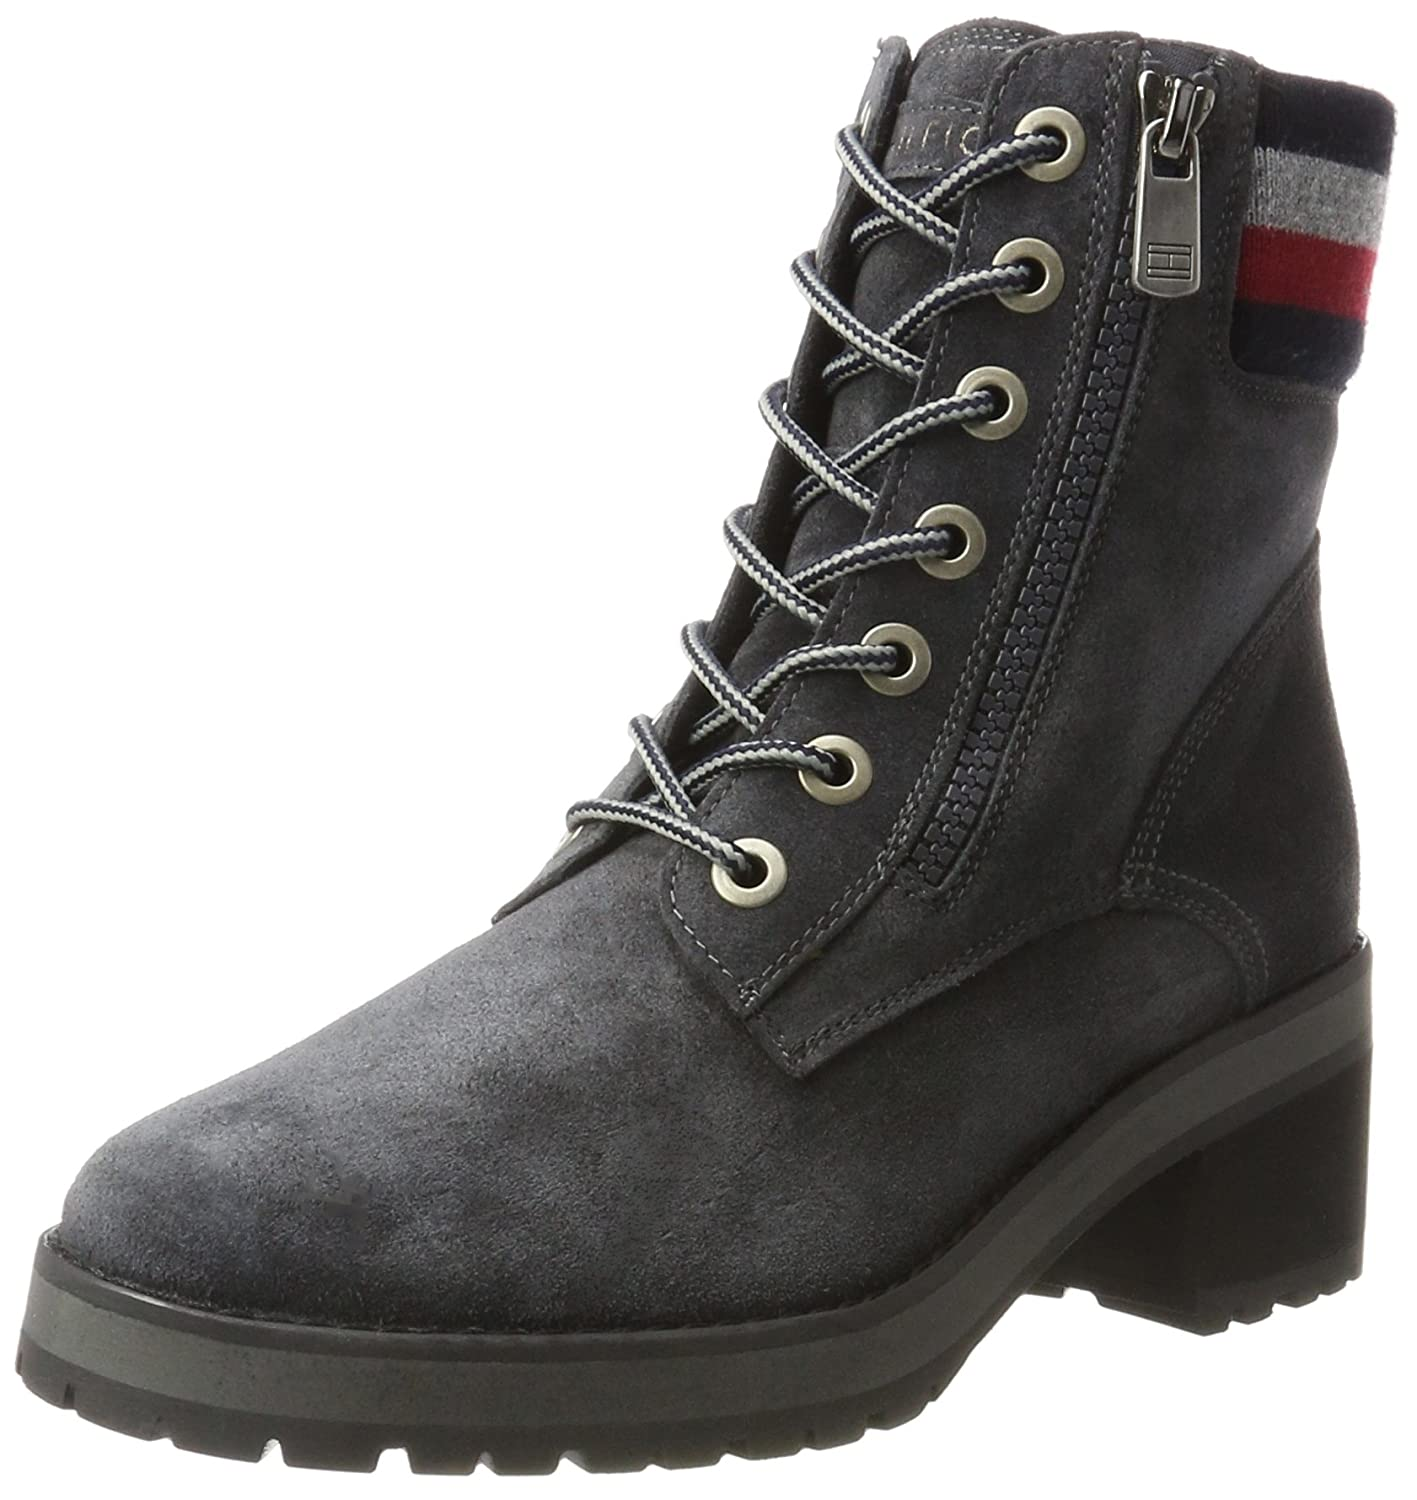 Tommy Hilfiger A1285licia 1b - Botines Chukka Mujer Gris (Magnet)